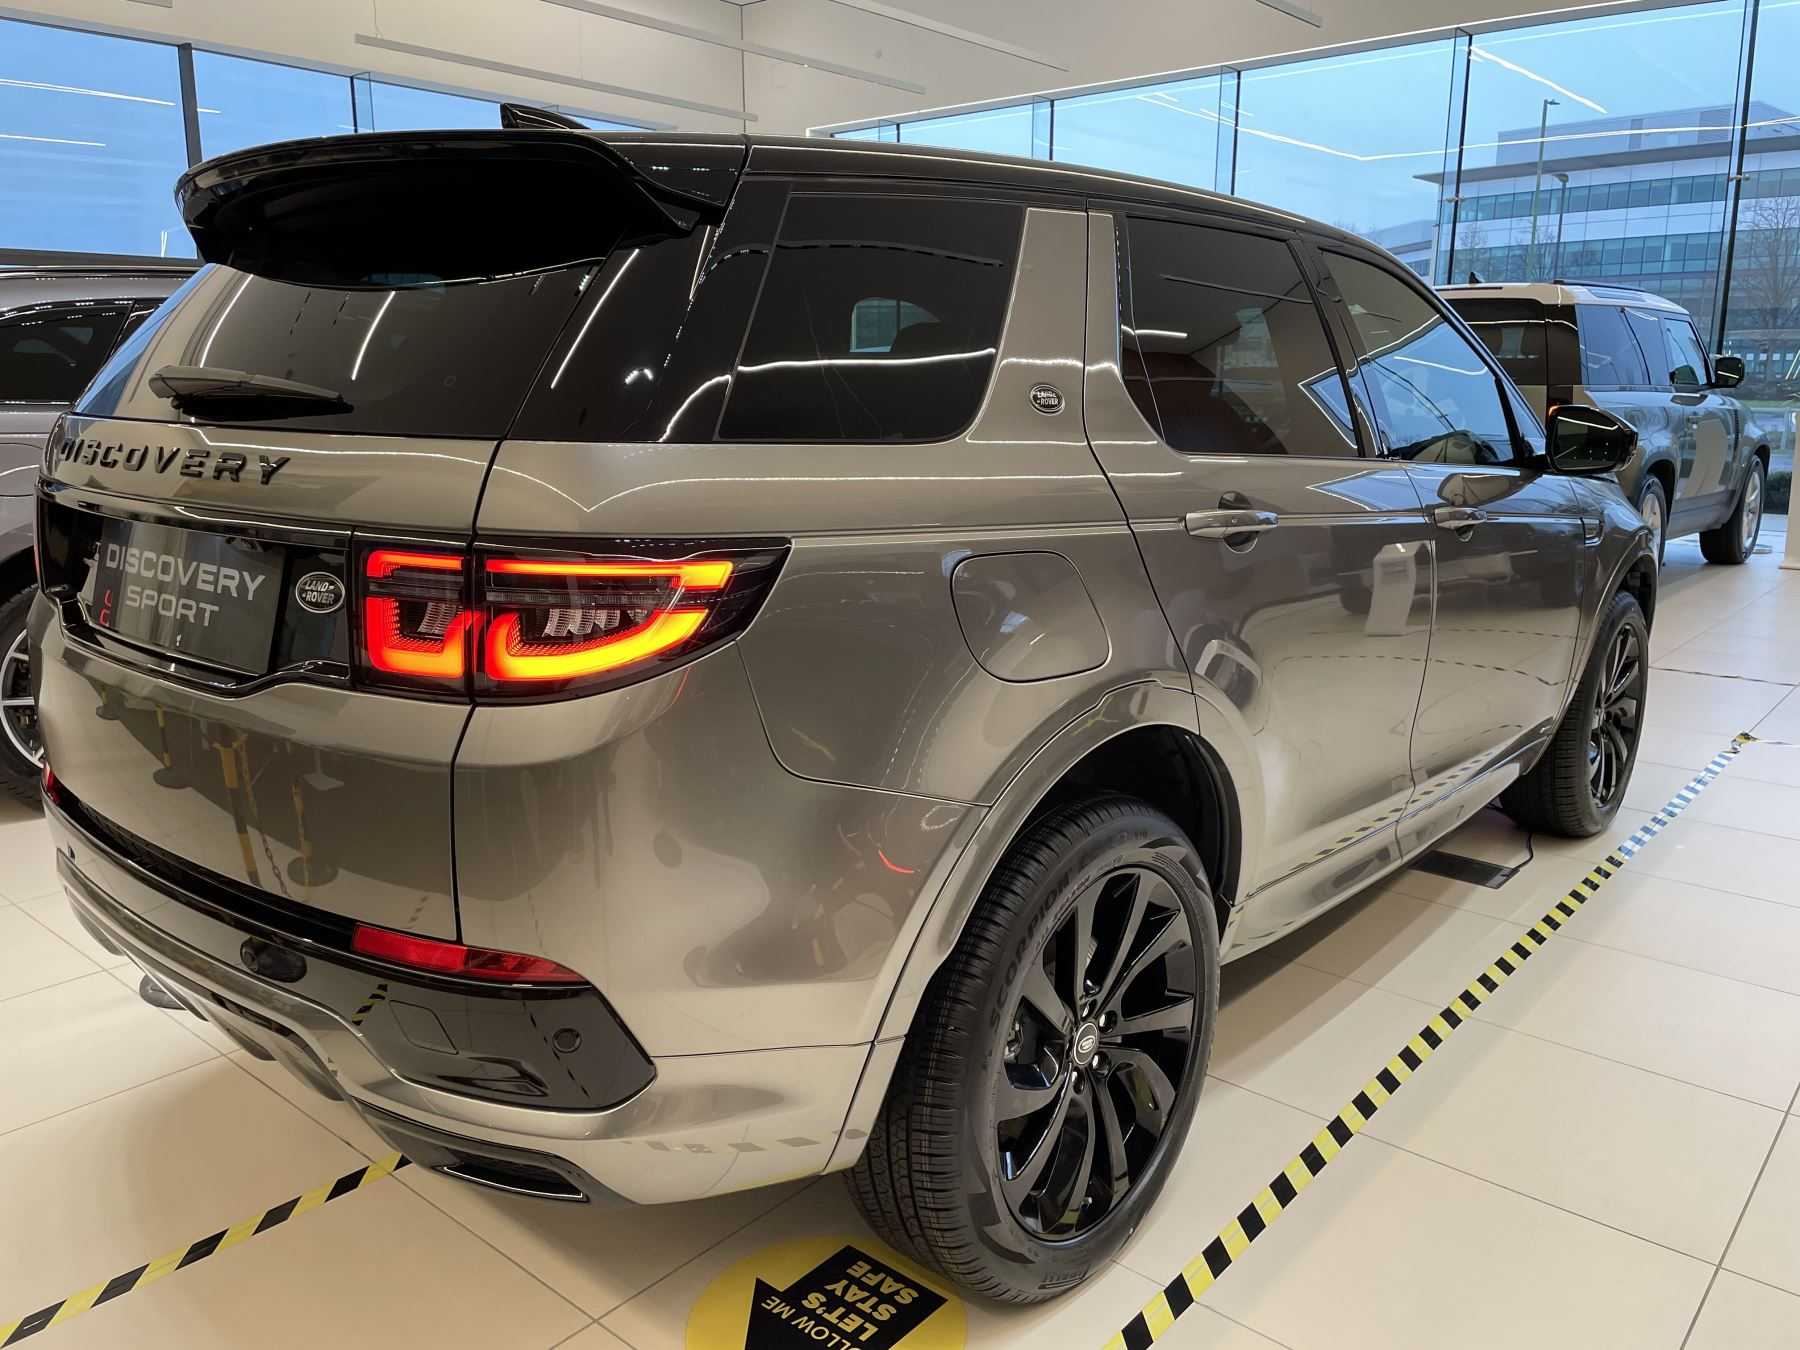 Land Rover Discovery Sport 2.0 P250 R-Dynamic HSE image 3